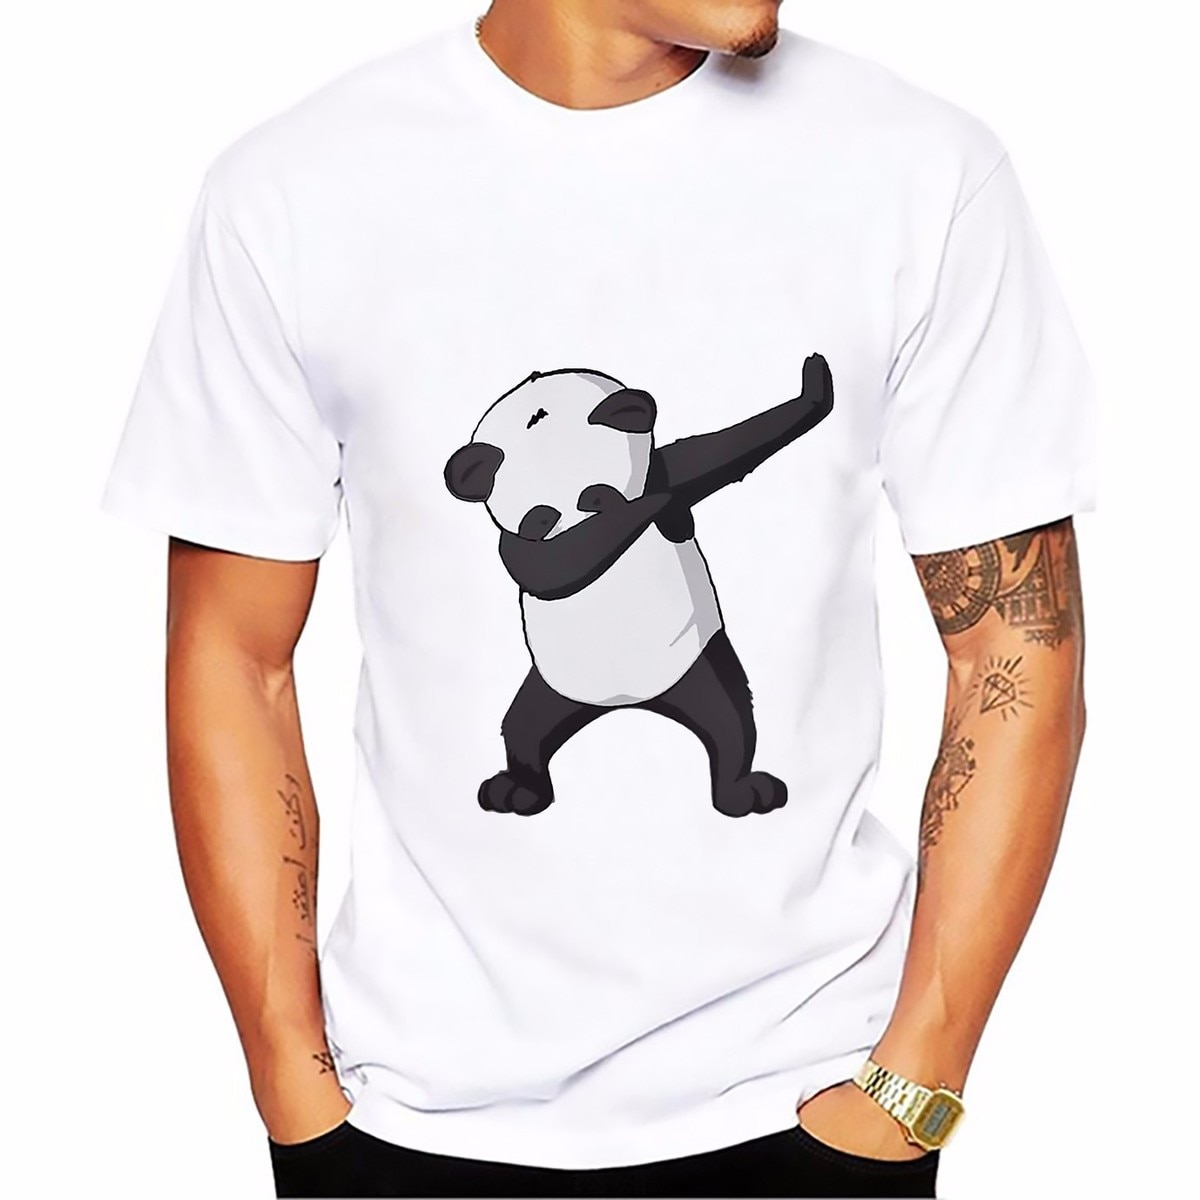 Dab dance panda T Shirt men O-neck Breathable Plus Size tee shirts homme Short Sleeve Casual dabbing